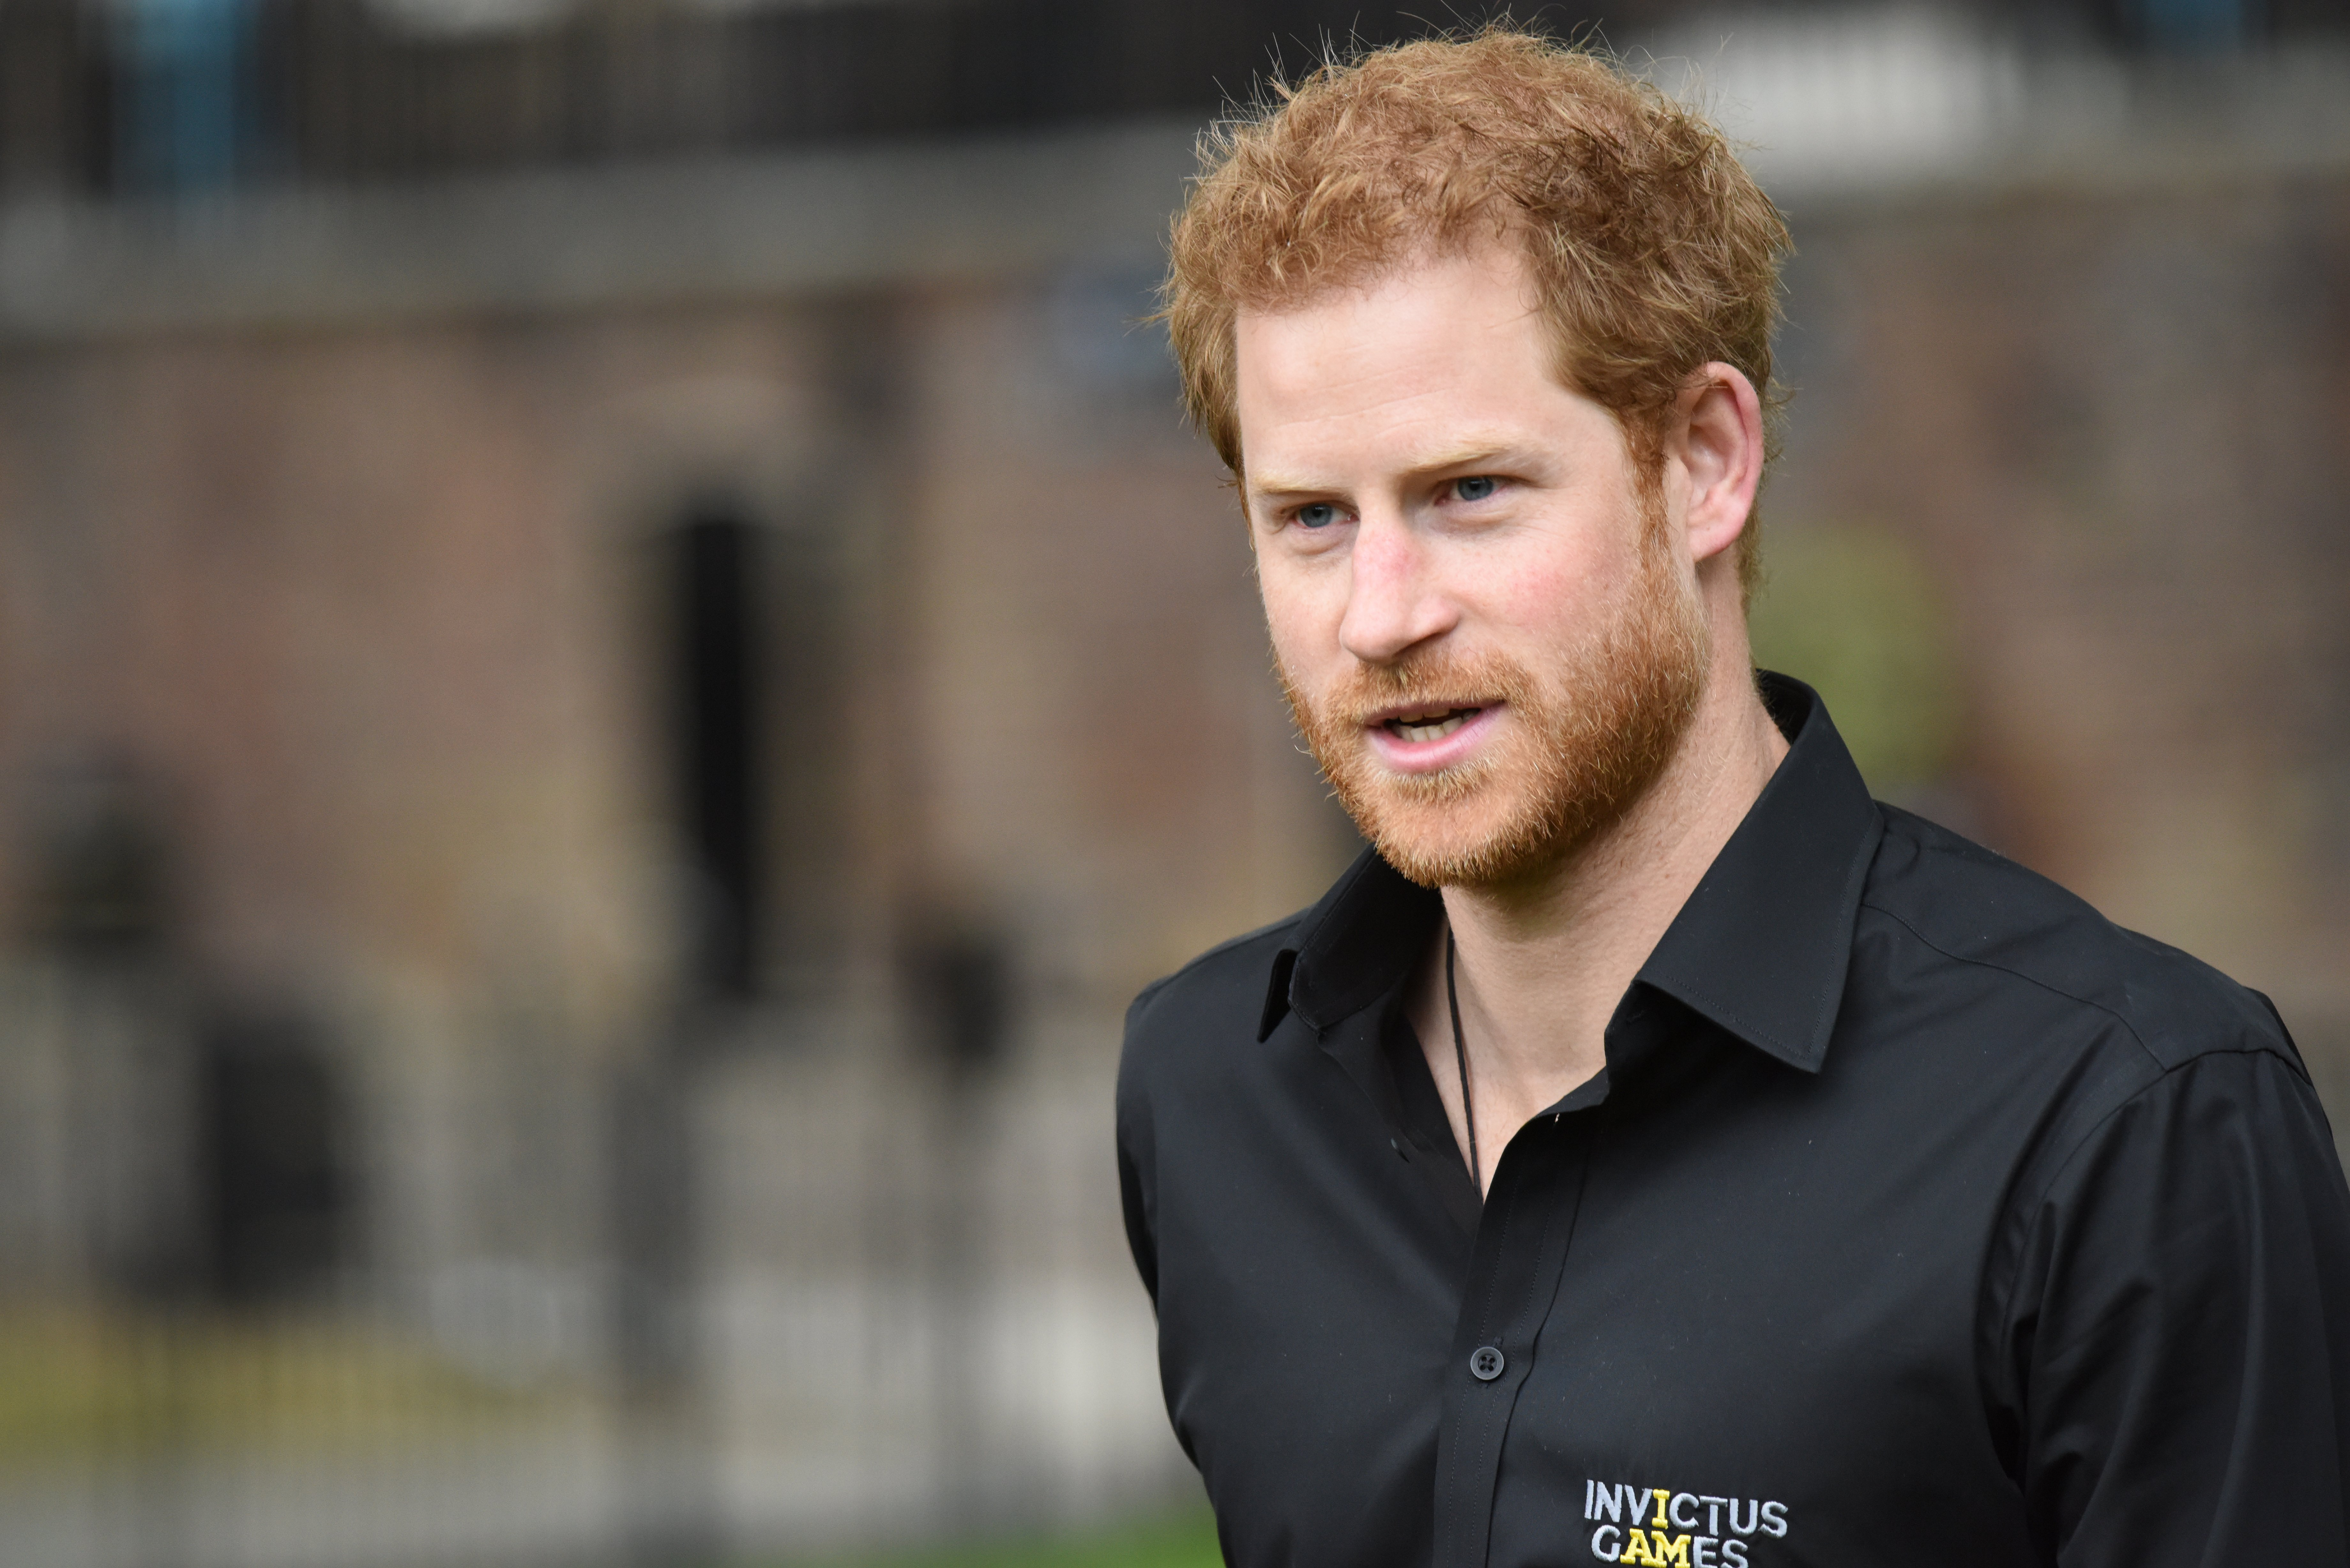 Prince Harry, Patron of the Invictus Games Foundation, attends the launch of the team selected to represent the UK at the Invictus Games Toronto on May 2017 | Photo: Shutterstock